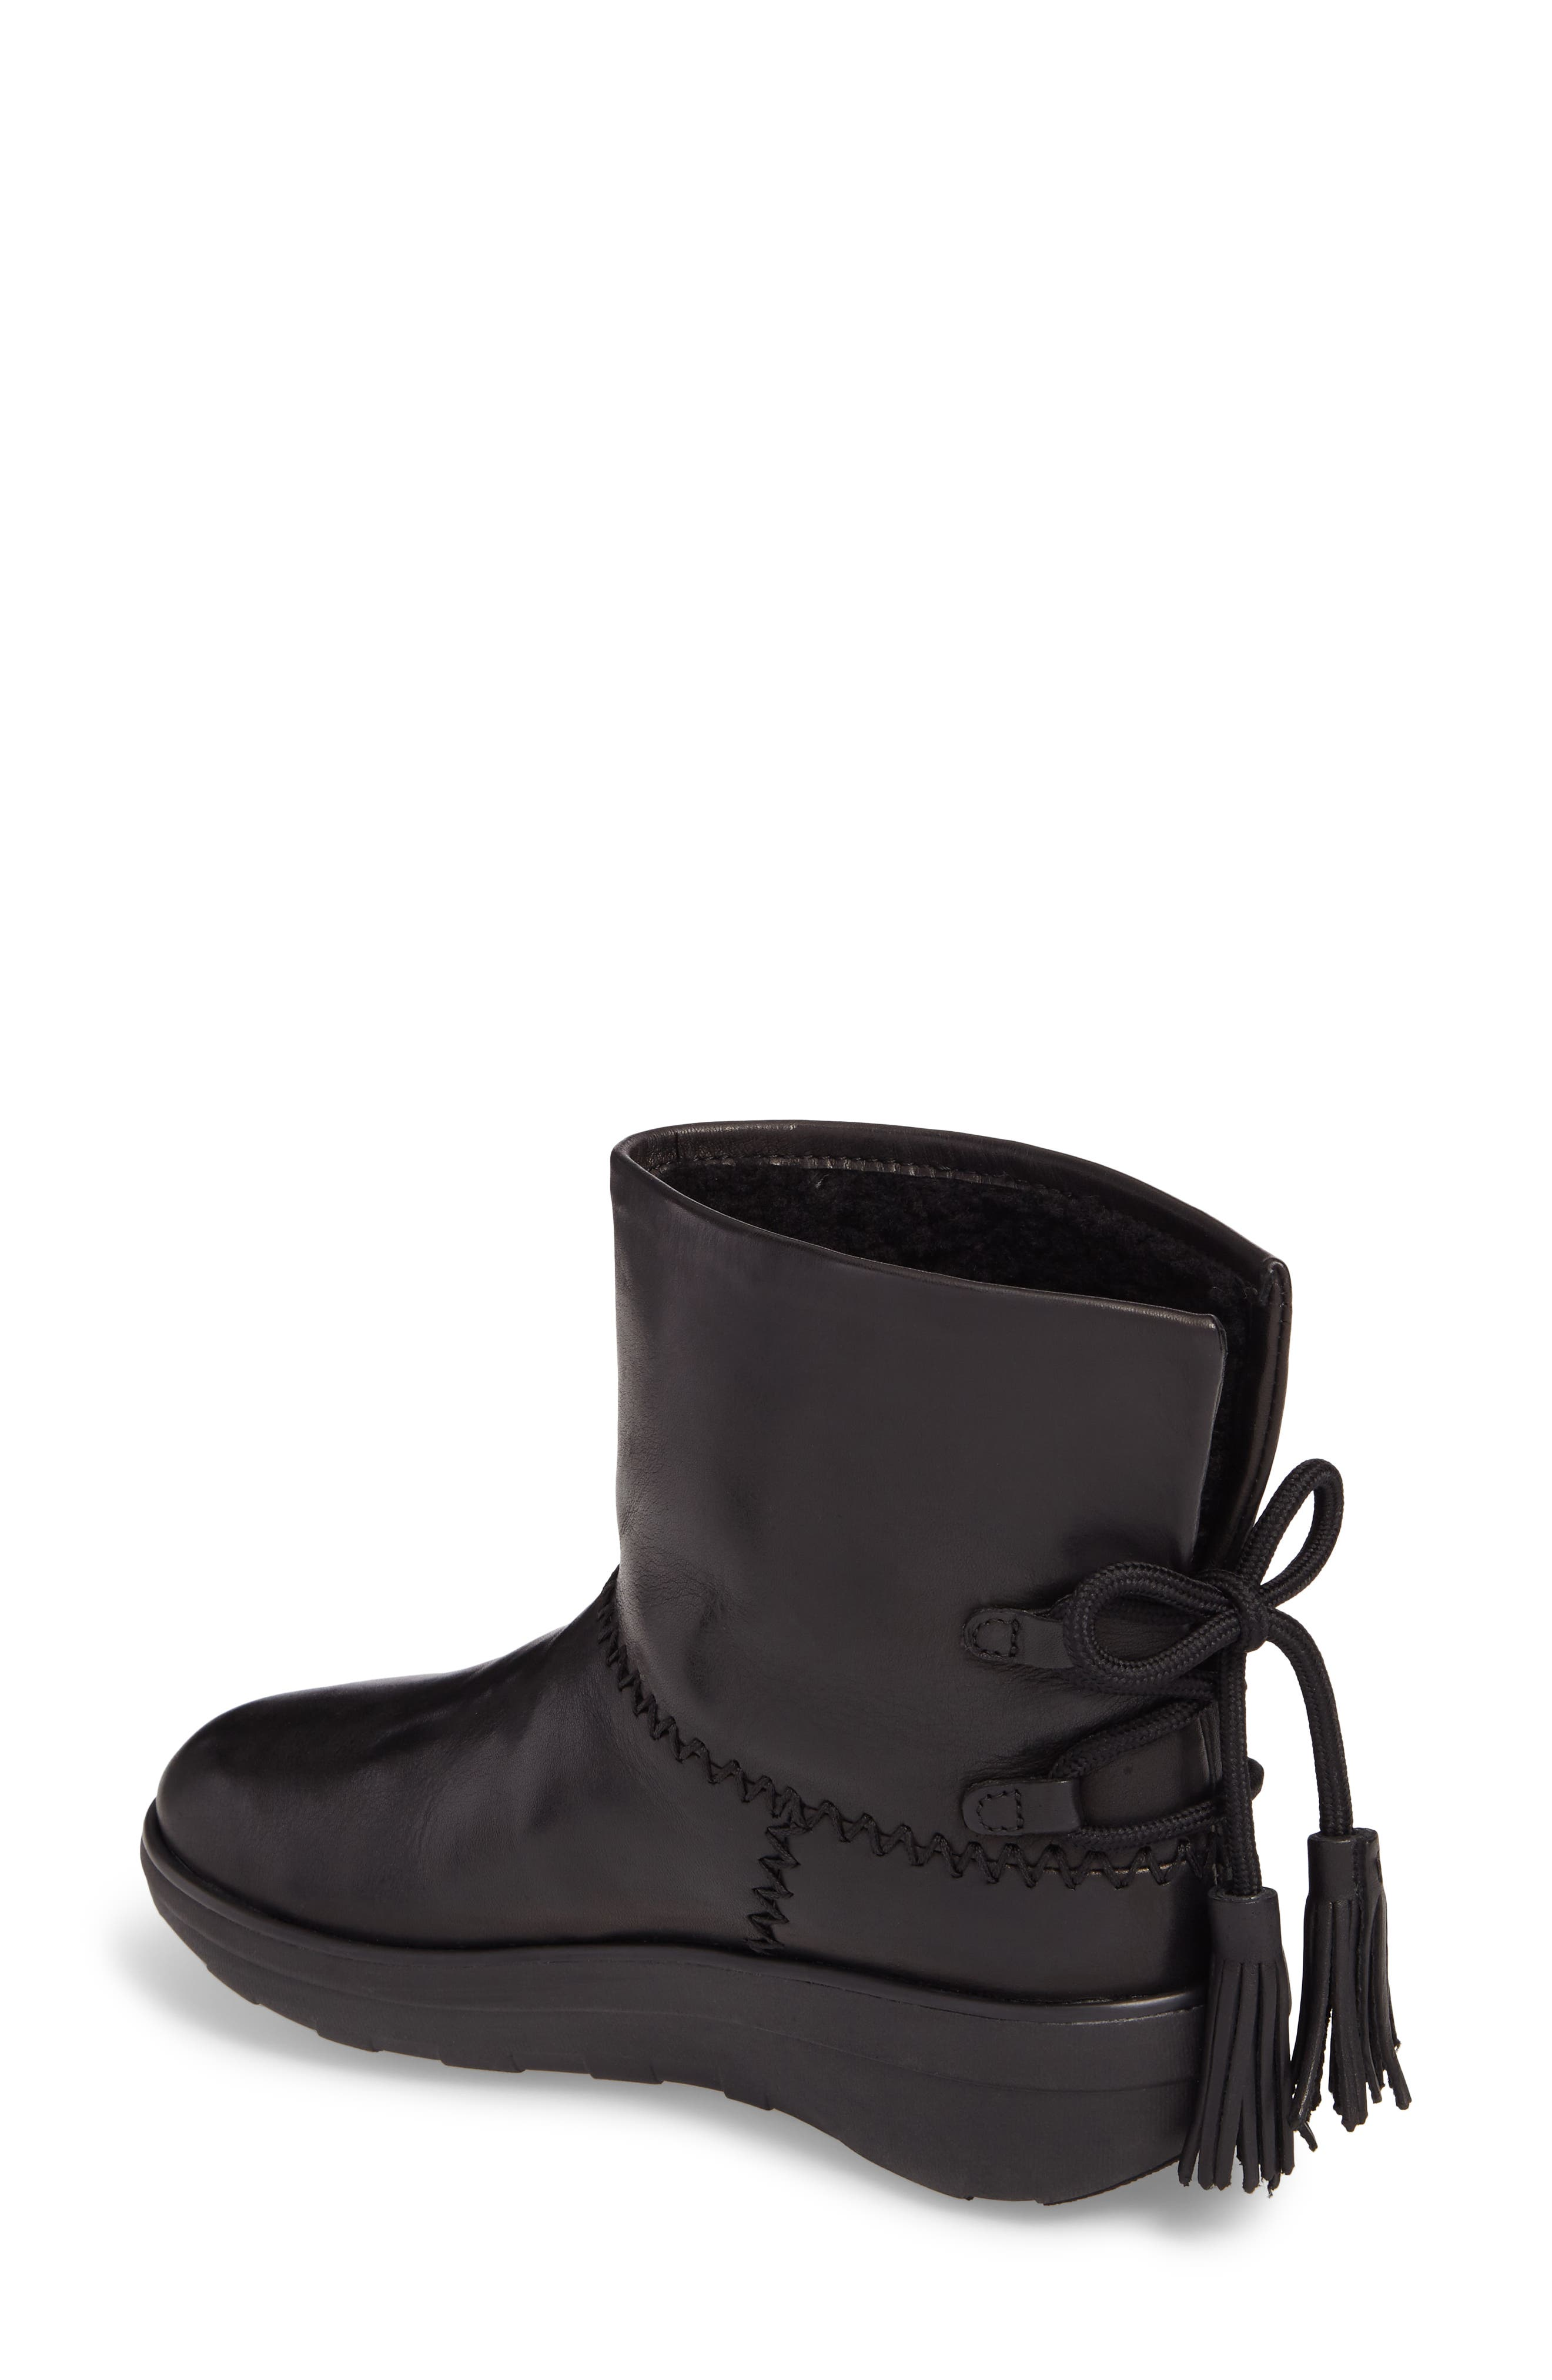 Alternate Image 2  - Fitflop Mukluk Shorty II Boot with Genuine Shearling Lining (Women)